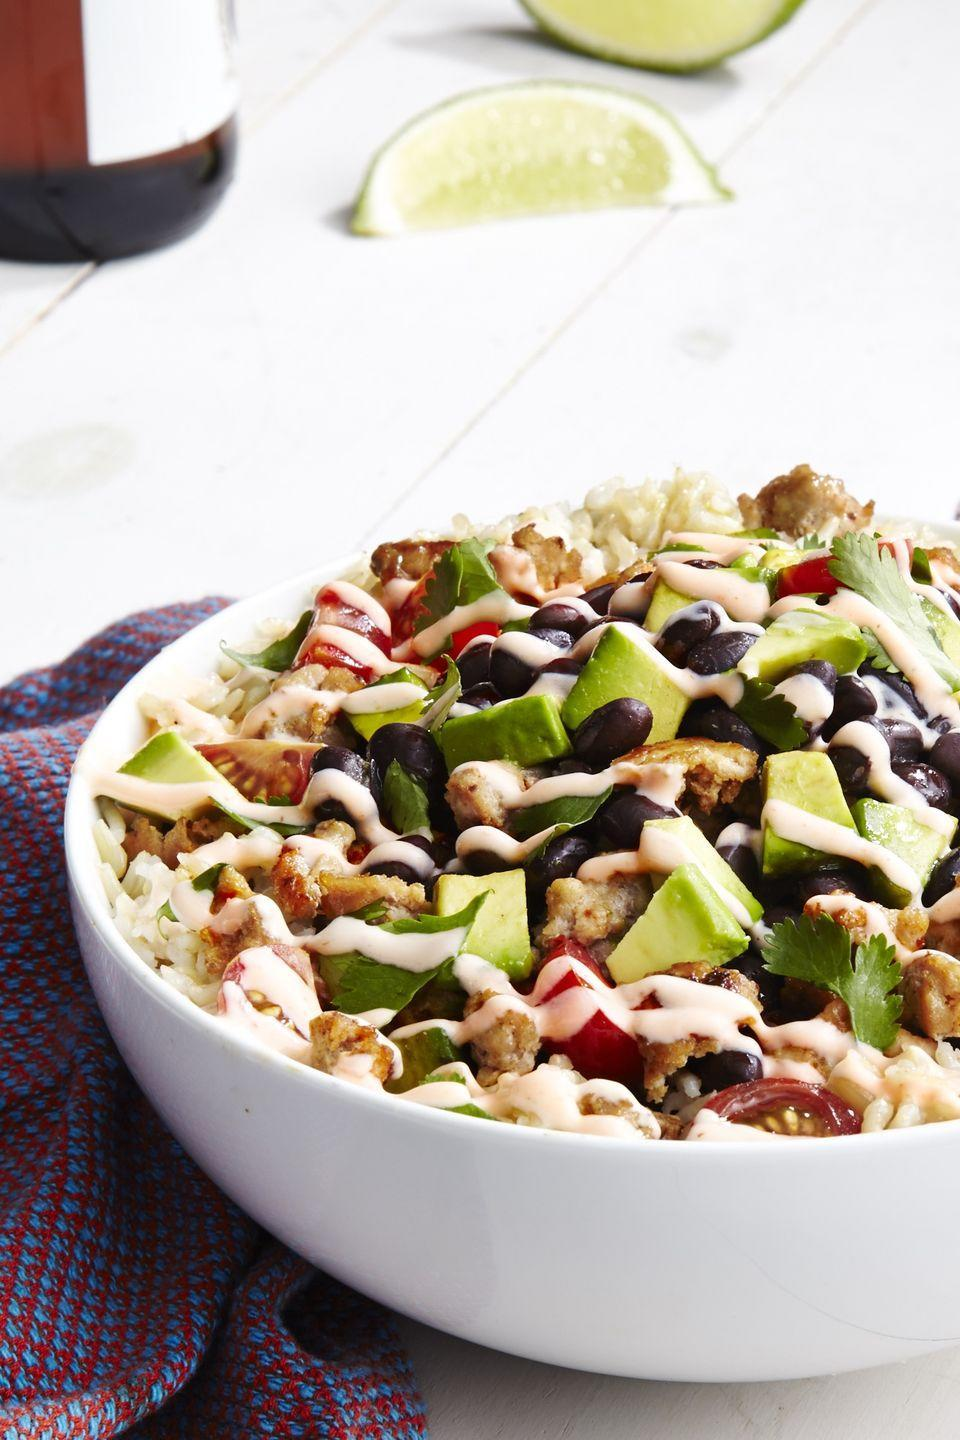 """<p>All the flavors of a burrito without all the calories.</p><p>Get the recipe from <a href=""""https://www.delish.com/cooking/recipe-ideas/recipes/a46525/skinny-burrito-bowl-recipe/?visibilityoverride"""" rel=""""nofollow noopener"""" target=""""_blank"""" data-ylk=""""slk:Delish"""" class=""""link rapid-noclick-resp"""">Delish</a>.</p>"""